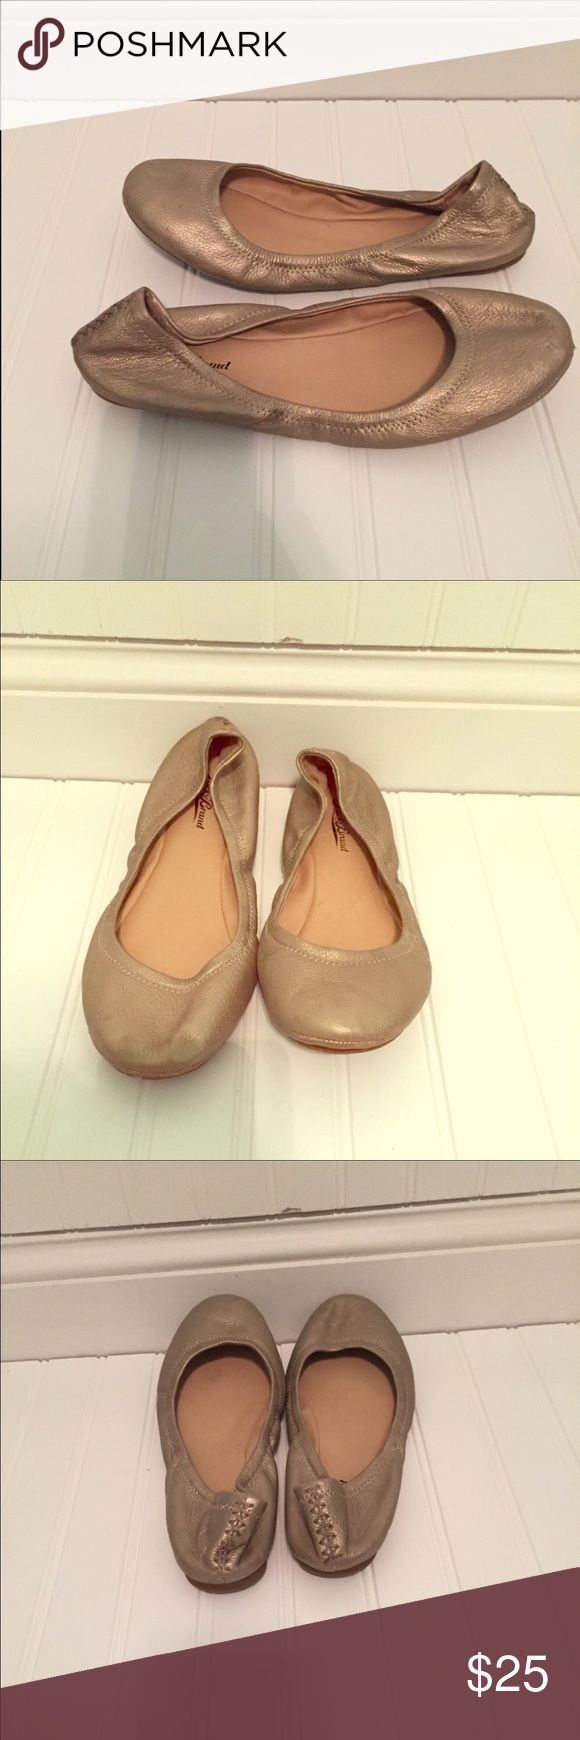 Lucky Brand Emmie ballet flats. Size 9.5 So cute and beyond comfortable!! These gold ballet flats will go with skinny jeans and capris, or can be dressed up! Small scuffs on the front, otherwise great condition. Smoke/pet free home. Lucky Brand Shoes